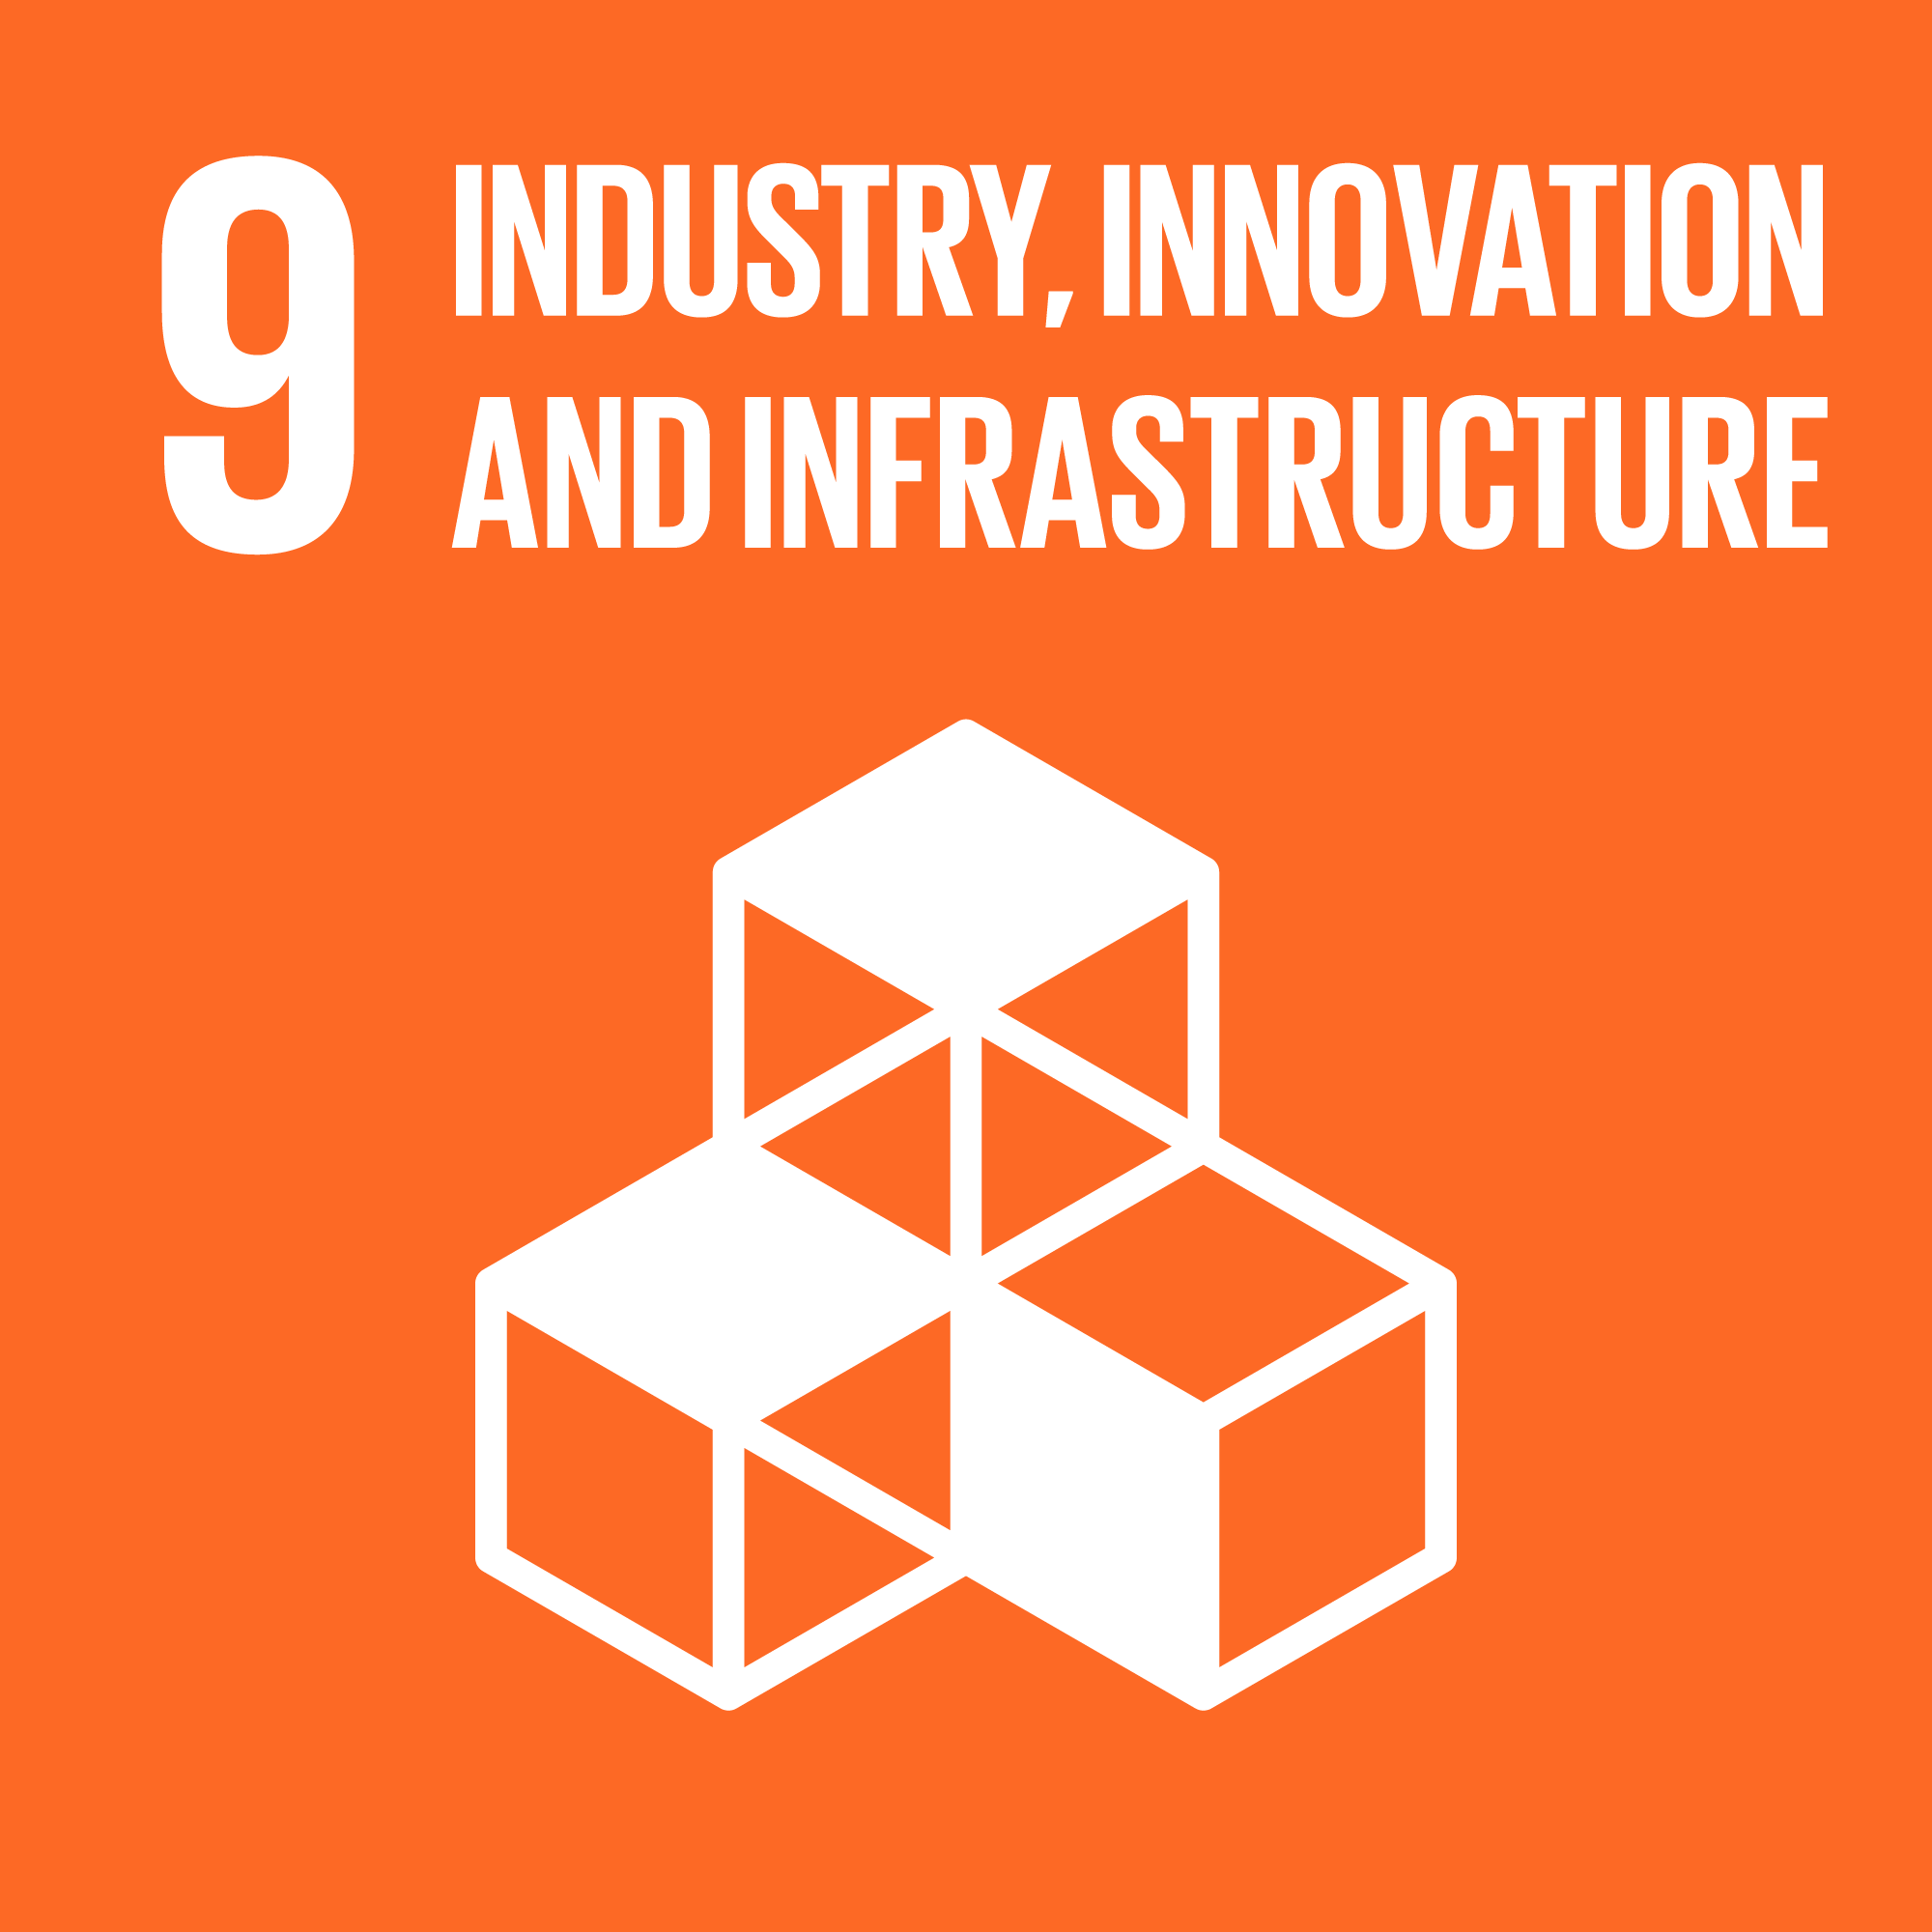 Agenda 2030 goal number 9: Industry, innovation, and infrastructure